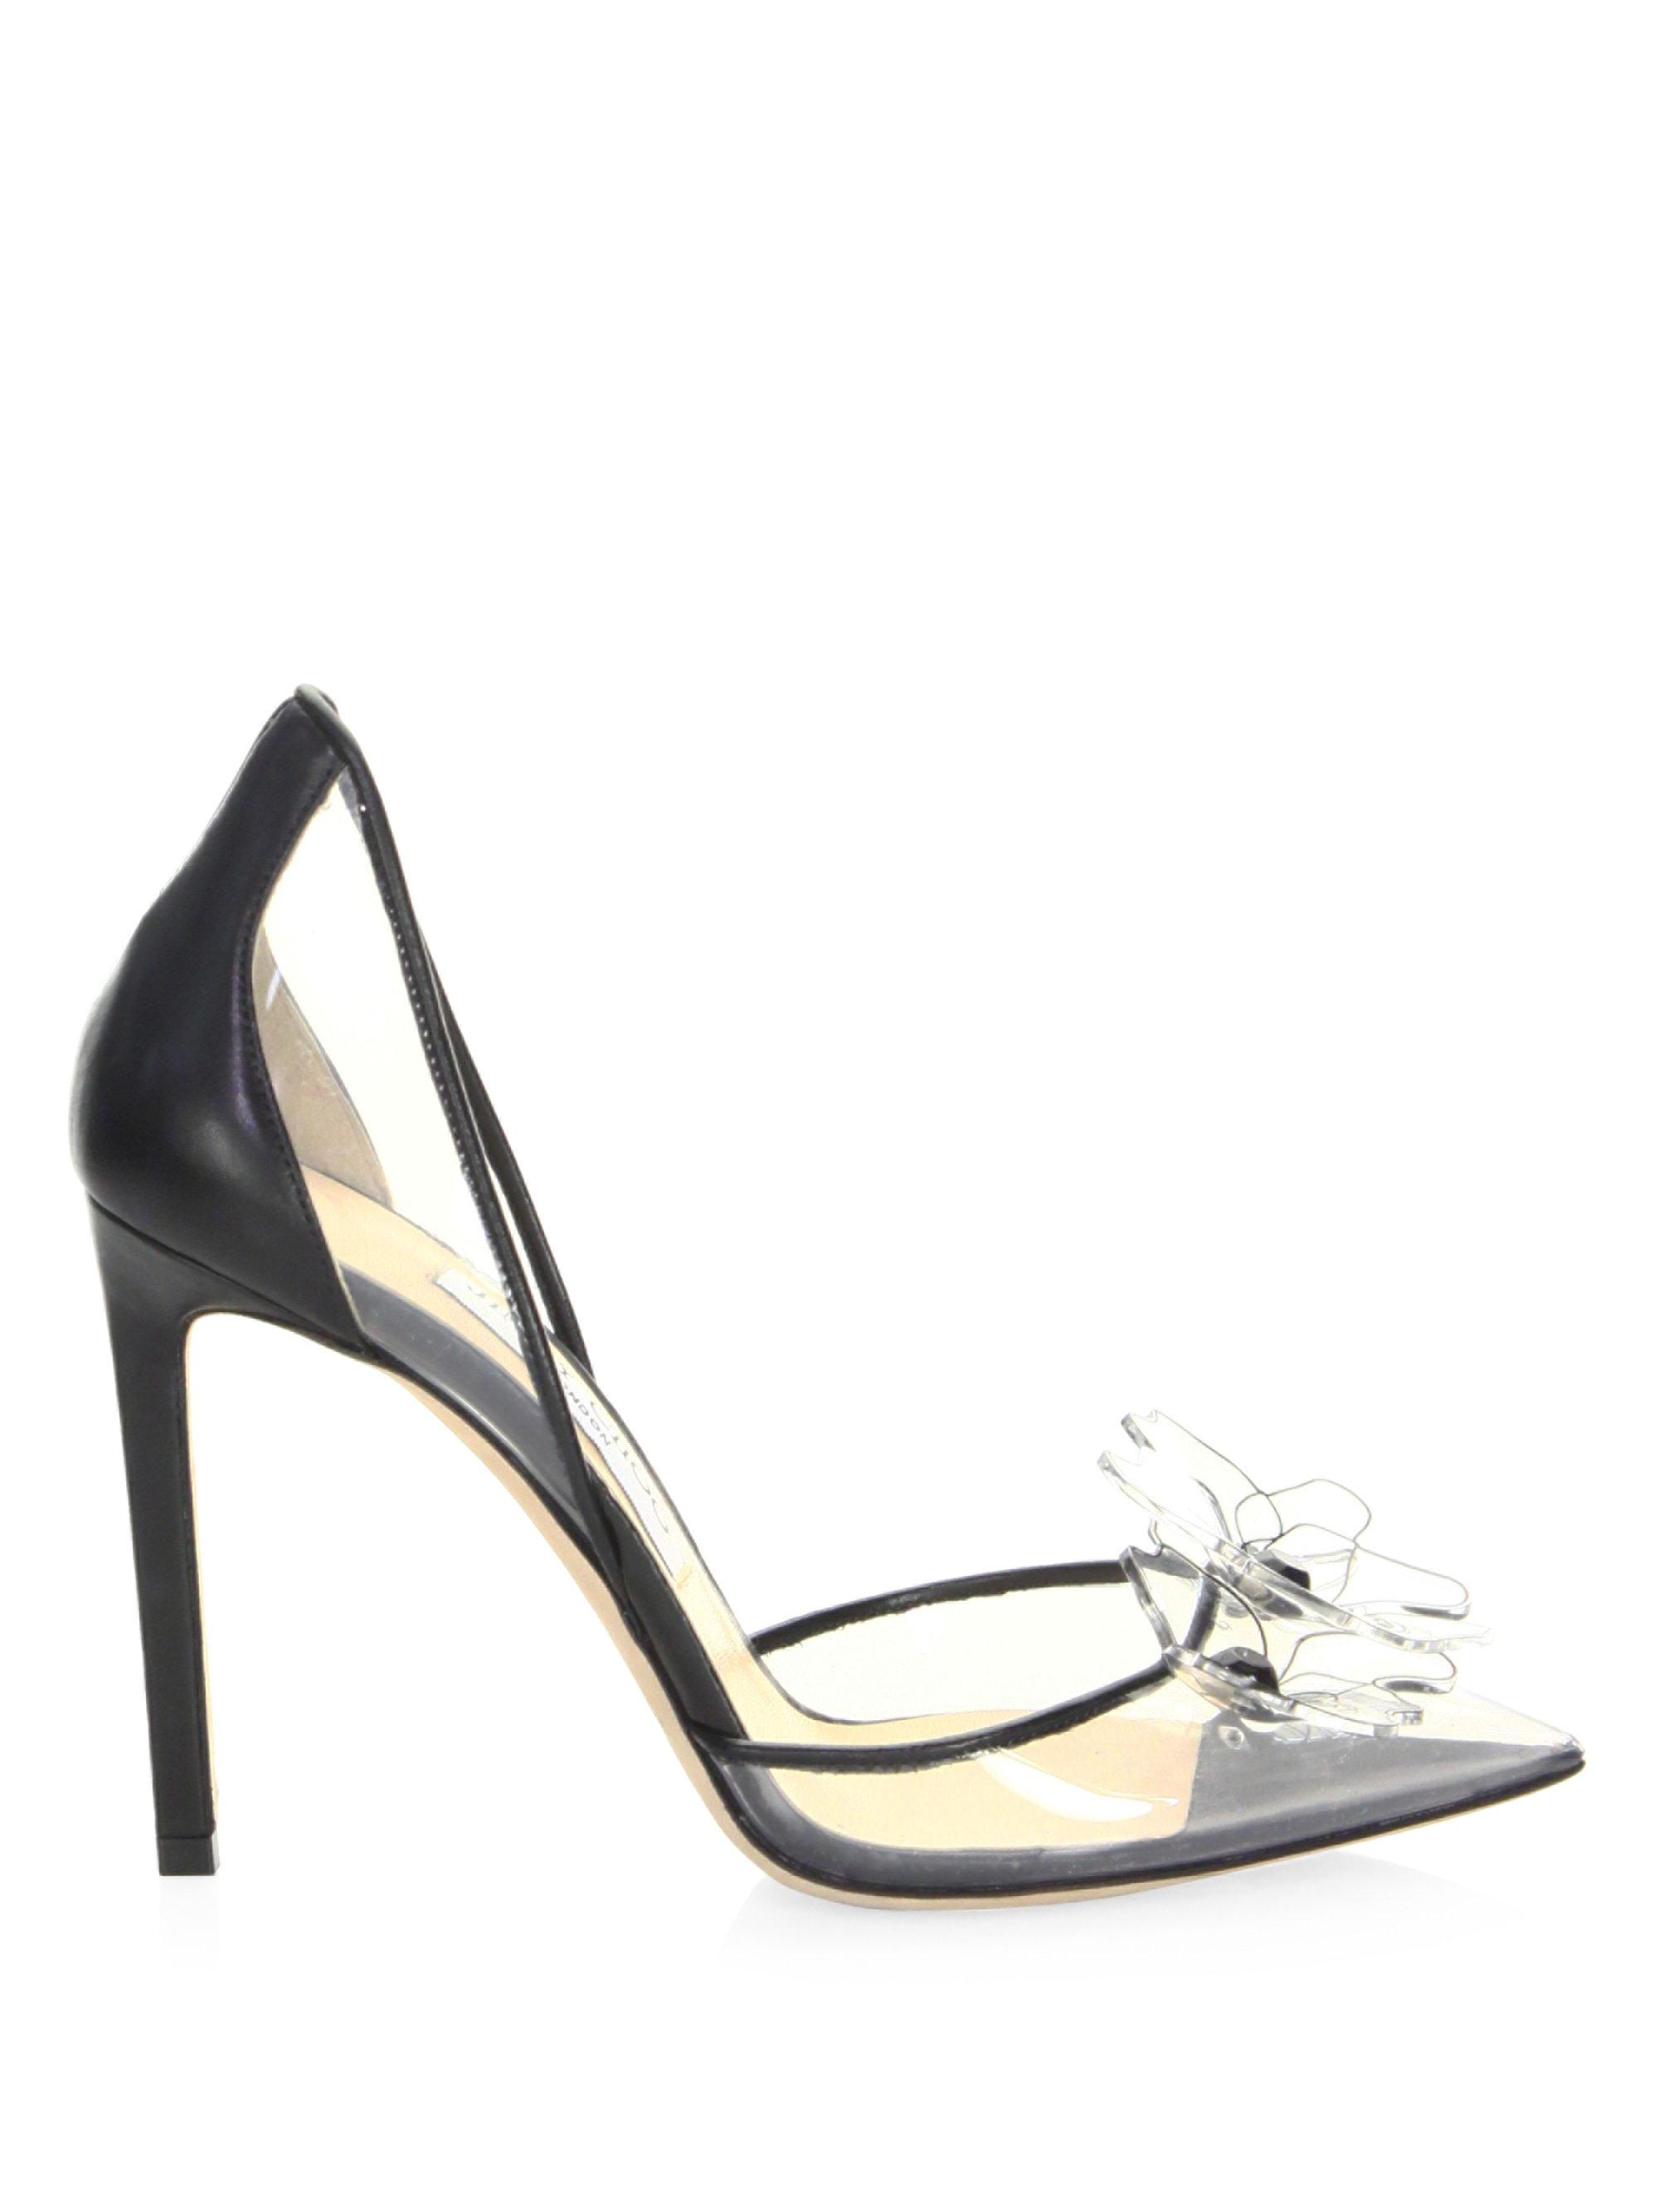 Levina 65 Embellished Pvc And Leather Pumps - Black Jimmy Choo London